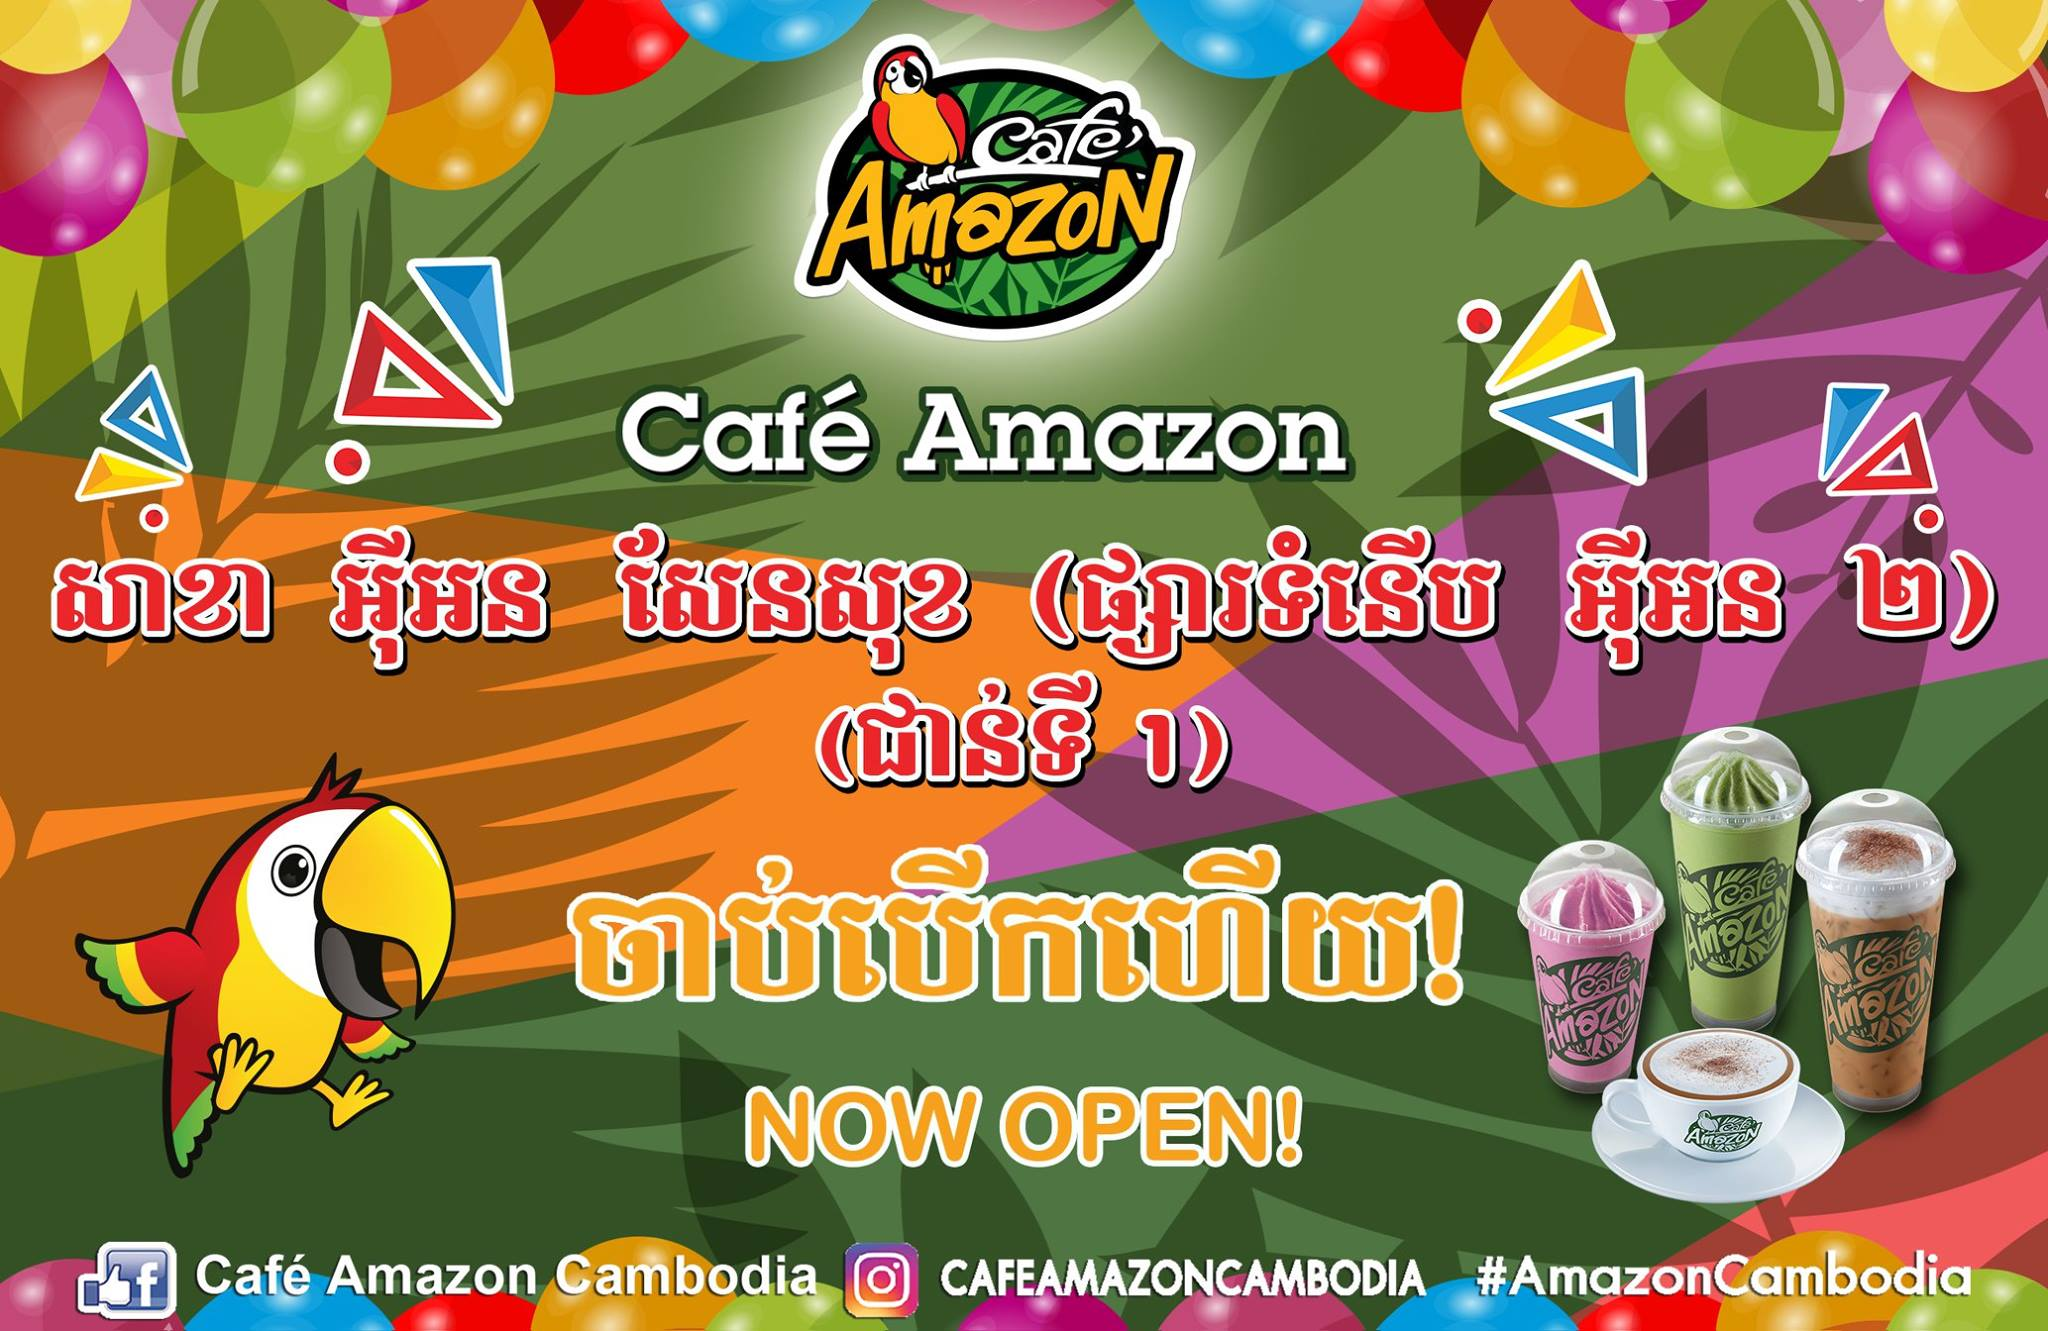 Cafe Amazon Aeon Sen Sok Soft Opening a3a0e615745d6